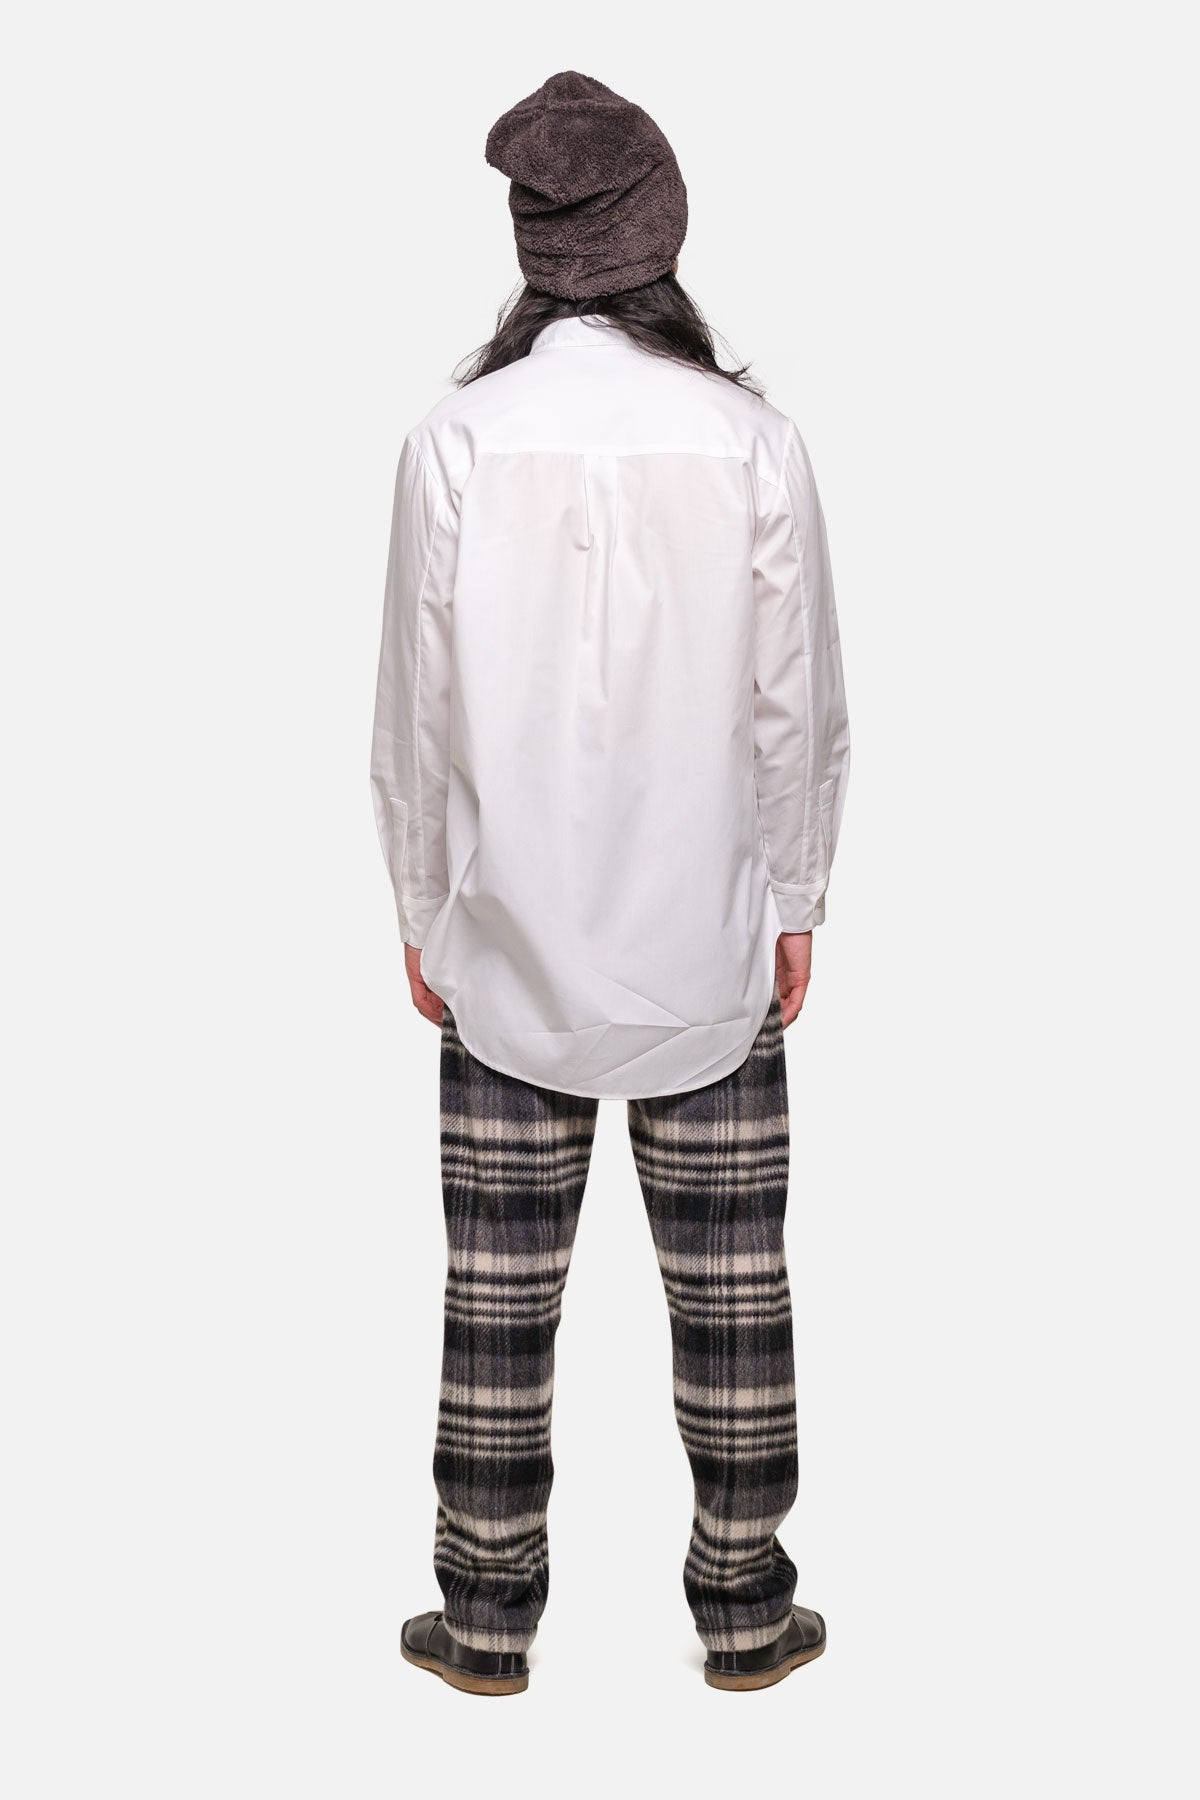 SHOREDITCH TUNIC IN WHITE POPLIN - Fortune Goods